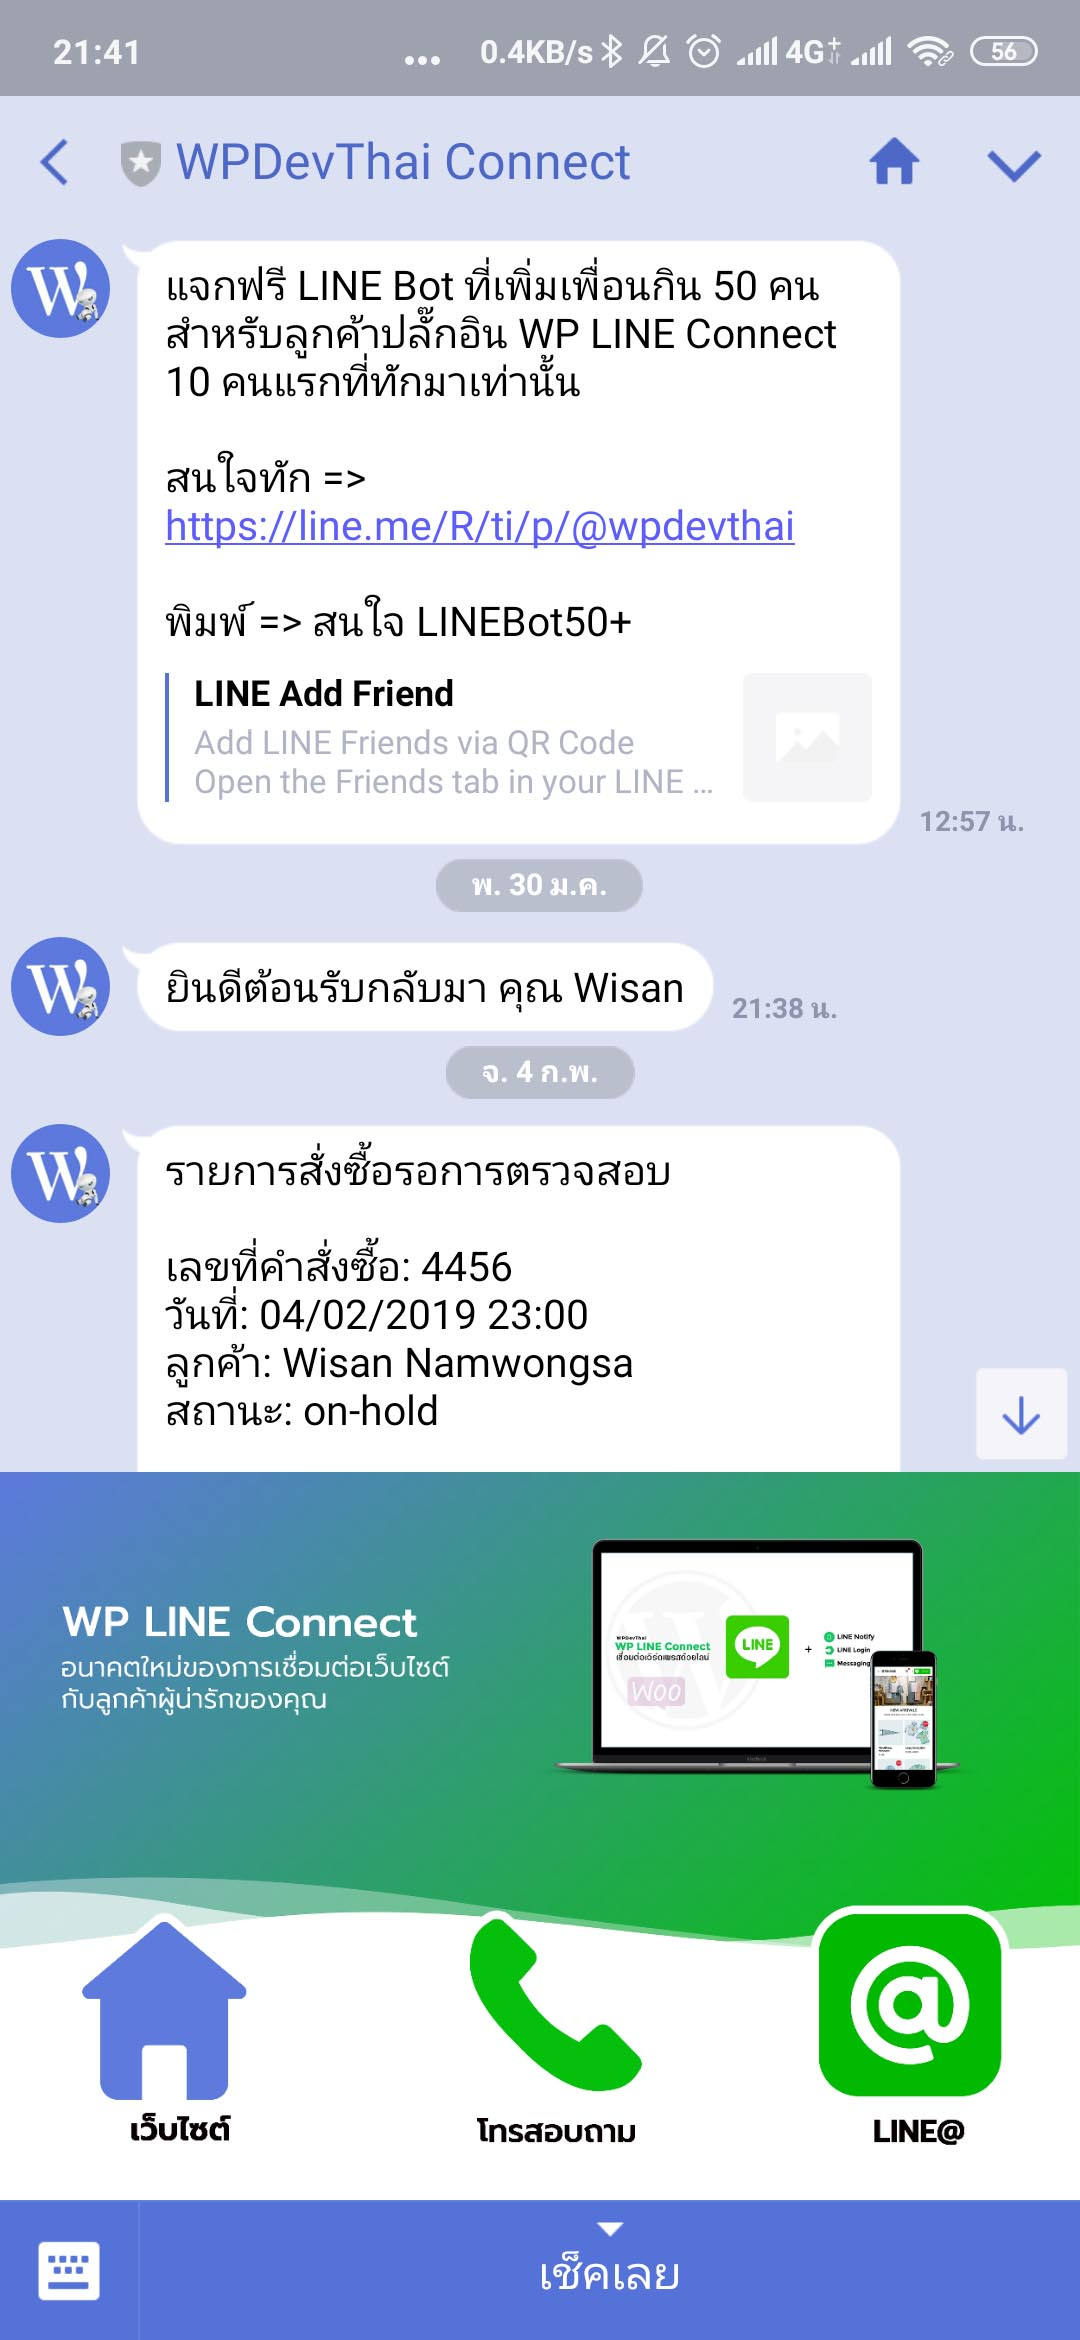 WP LINE-Connect Device Messaging API